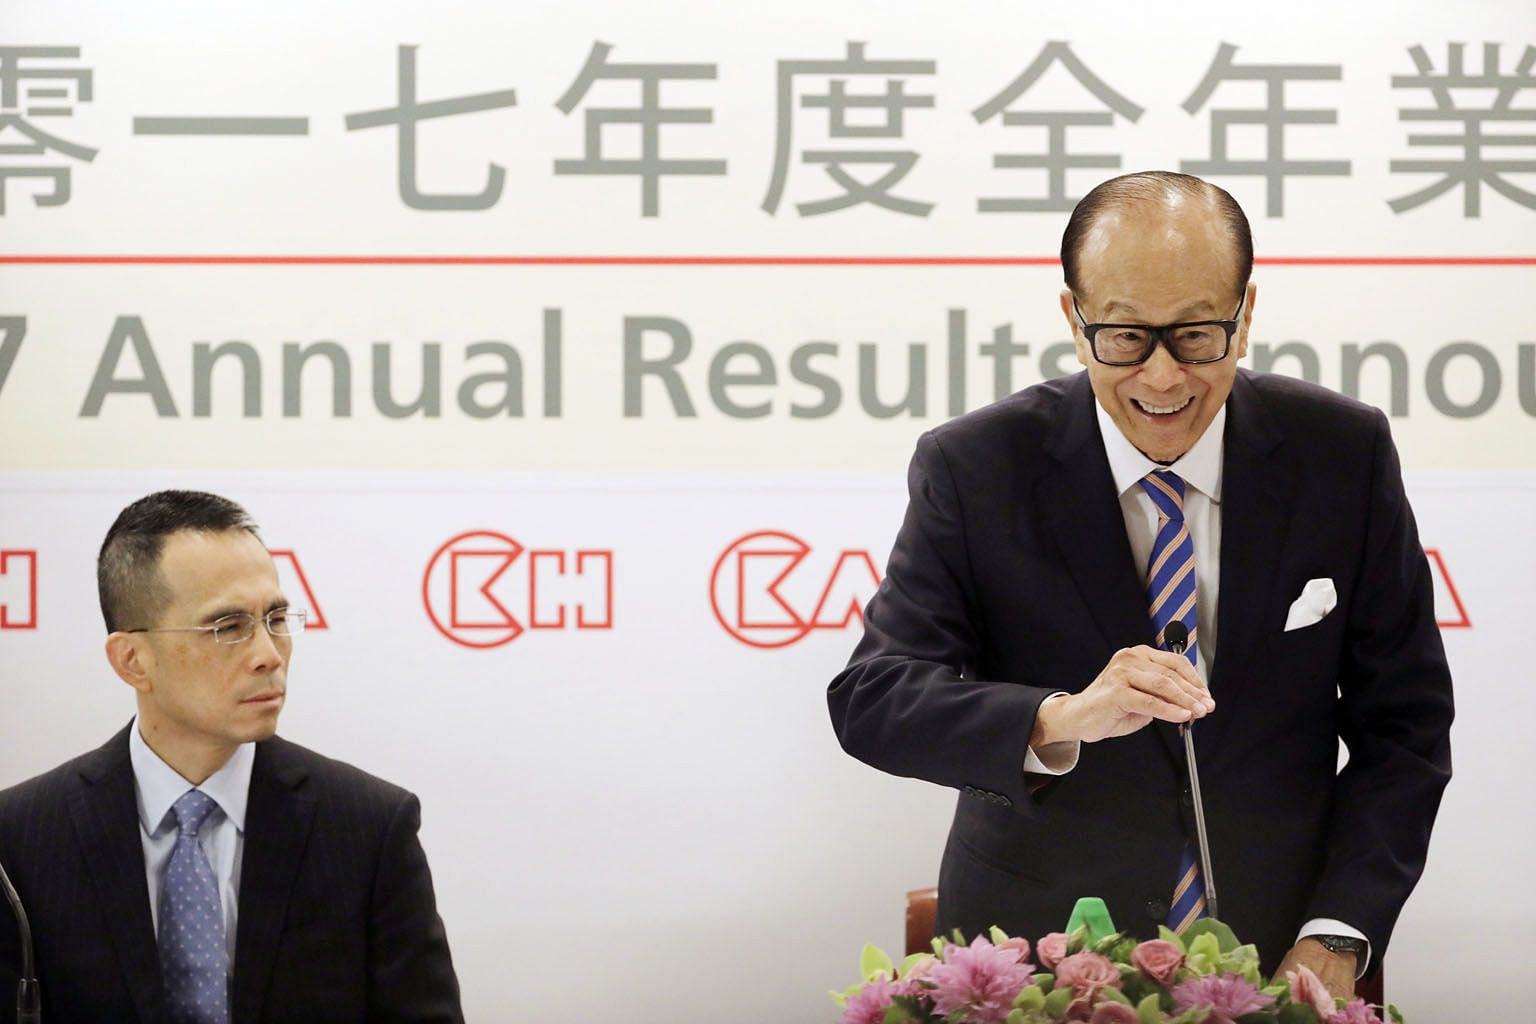 CK Hutchison Holdings' then chairman Li Ka Shing, accompanied by his son Victor, speaking at a Hong Kong news conference in March last year to announce his retirement and intention to hand over the top position to Mr Victor Li. In the year since his